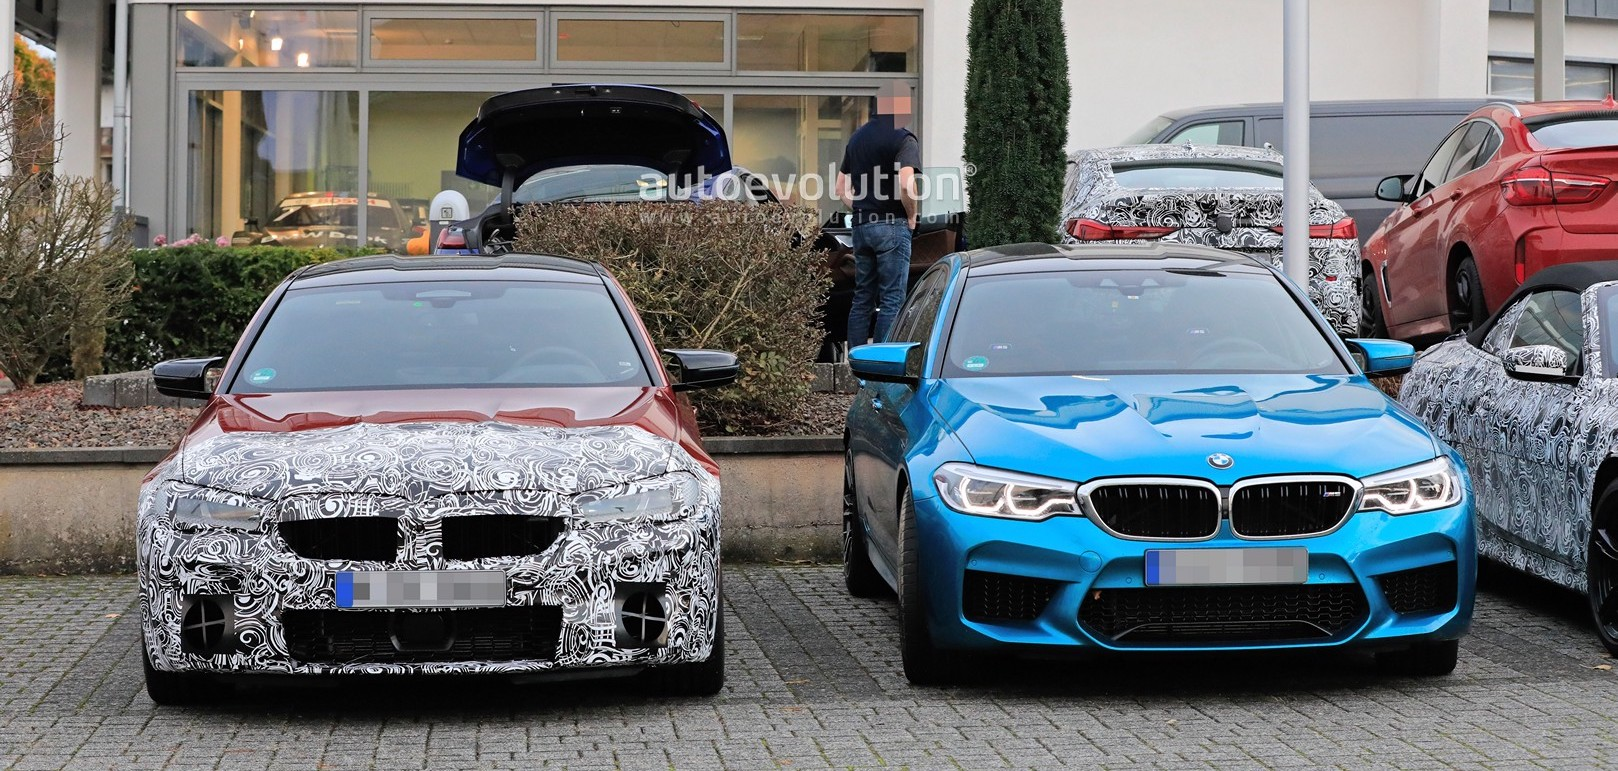 2021 BMW M5 Facelift Spotted Next to Current Model, Differences Are Subtle